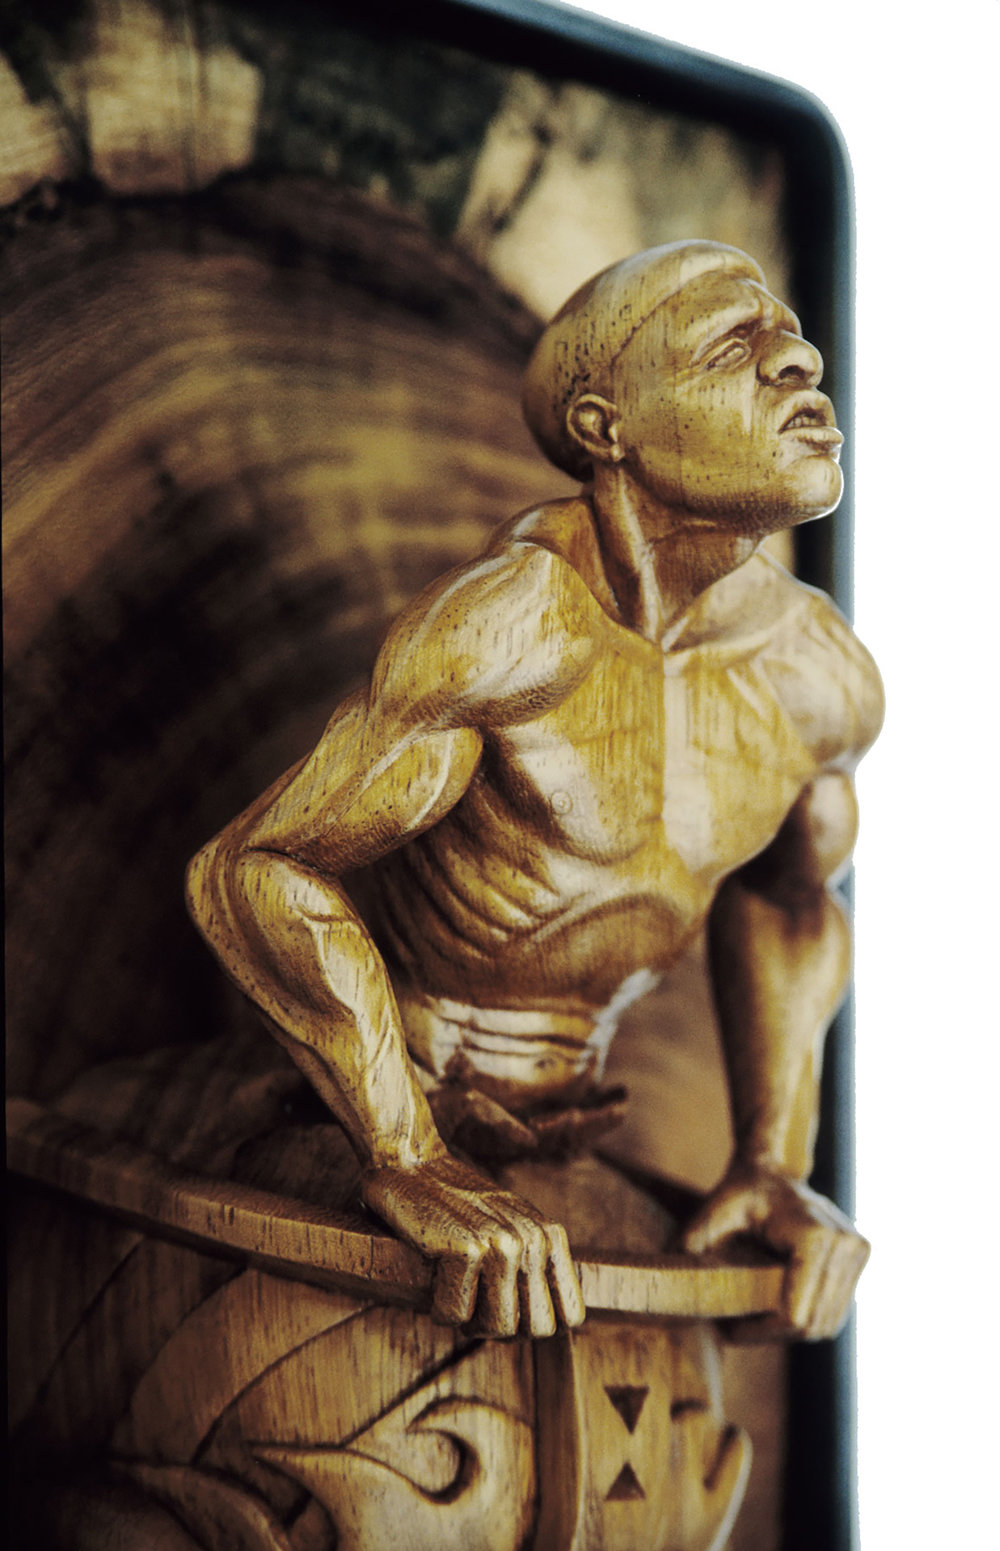 "Figurehead, 8"" tall, Iroko wood. Owned by the Mariner's Museum, Newport News, VA."